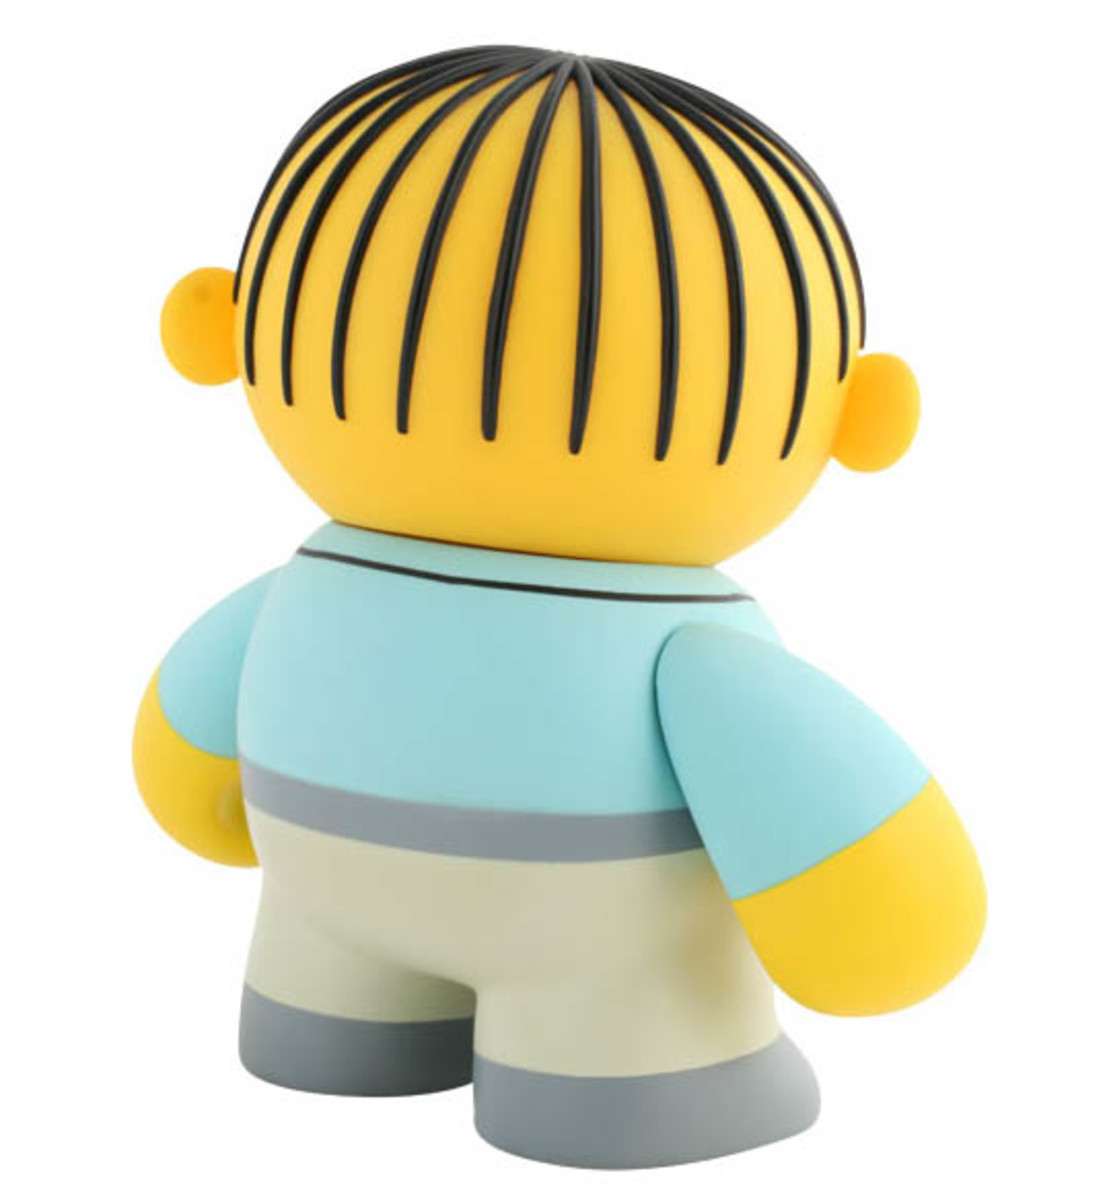 kidrobot_thesimpsons_ralph_wiggum_3